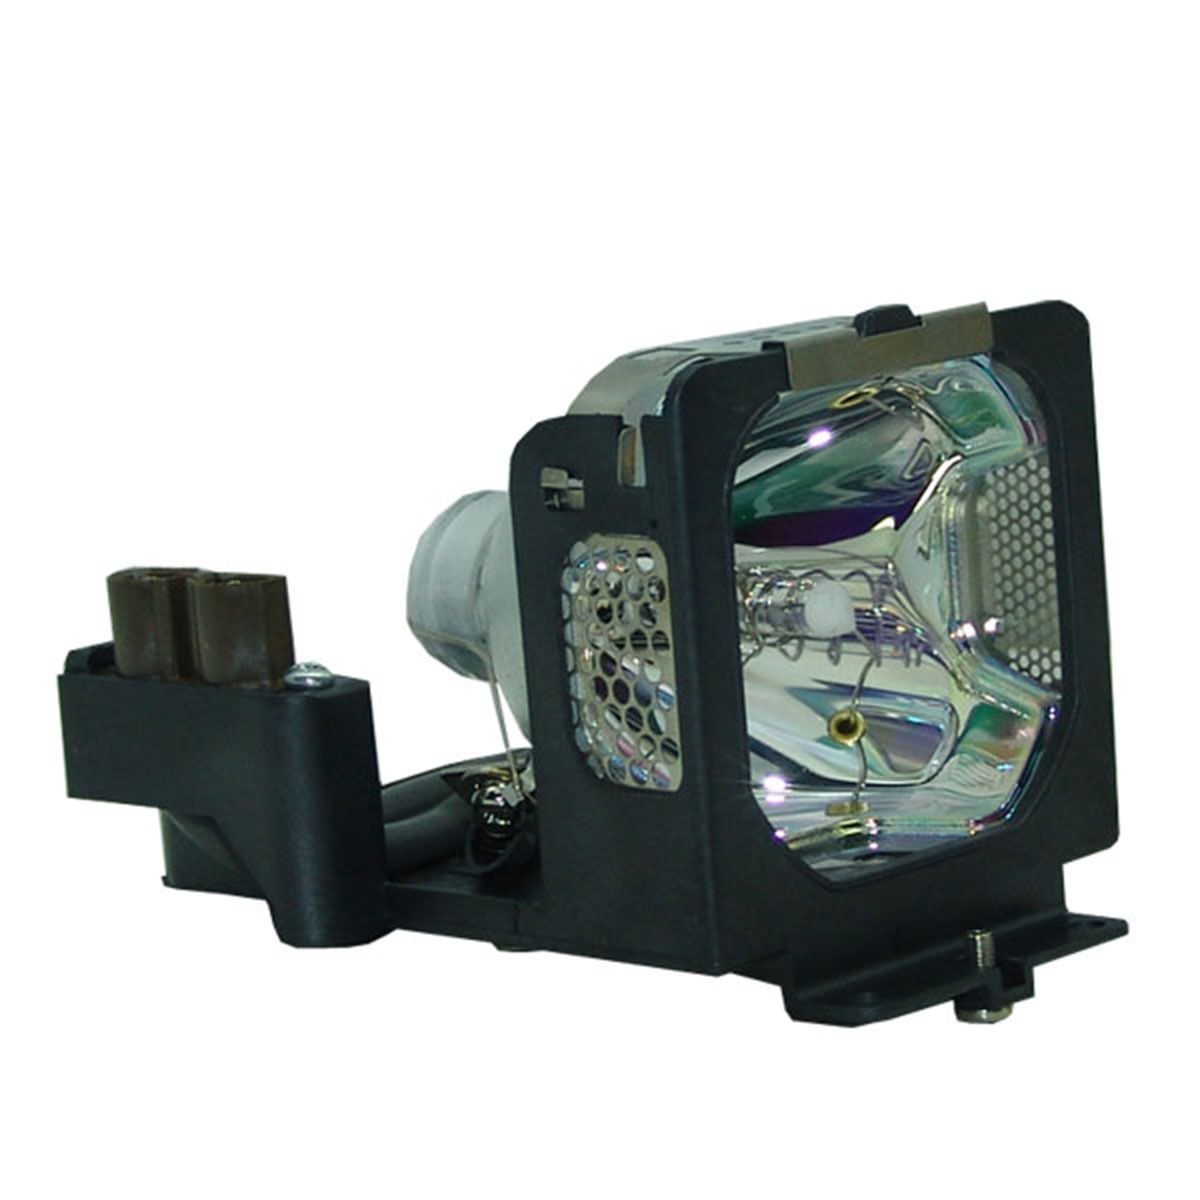 Projector Lamp Bulb POA-LMP66 POALMP66 LMP66 610-311-0486 for SANYO PLC-SE20 PLC-SE20A with housing lamp housing for sanyo 610 3252957 6103252957 projector dlp lcd bulb